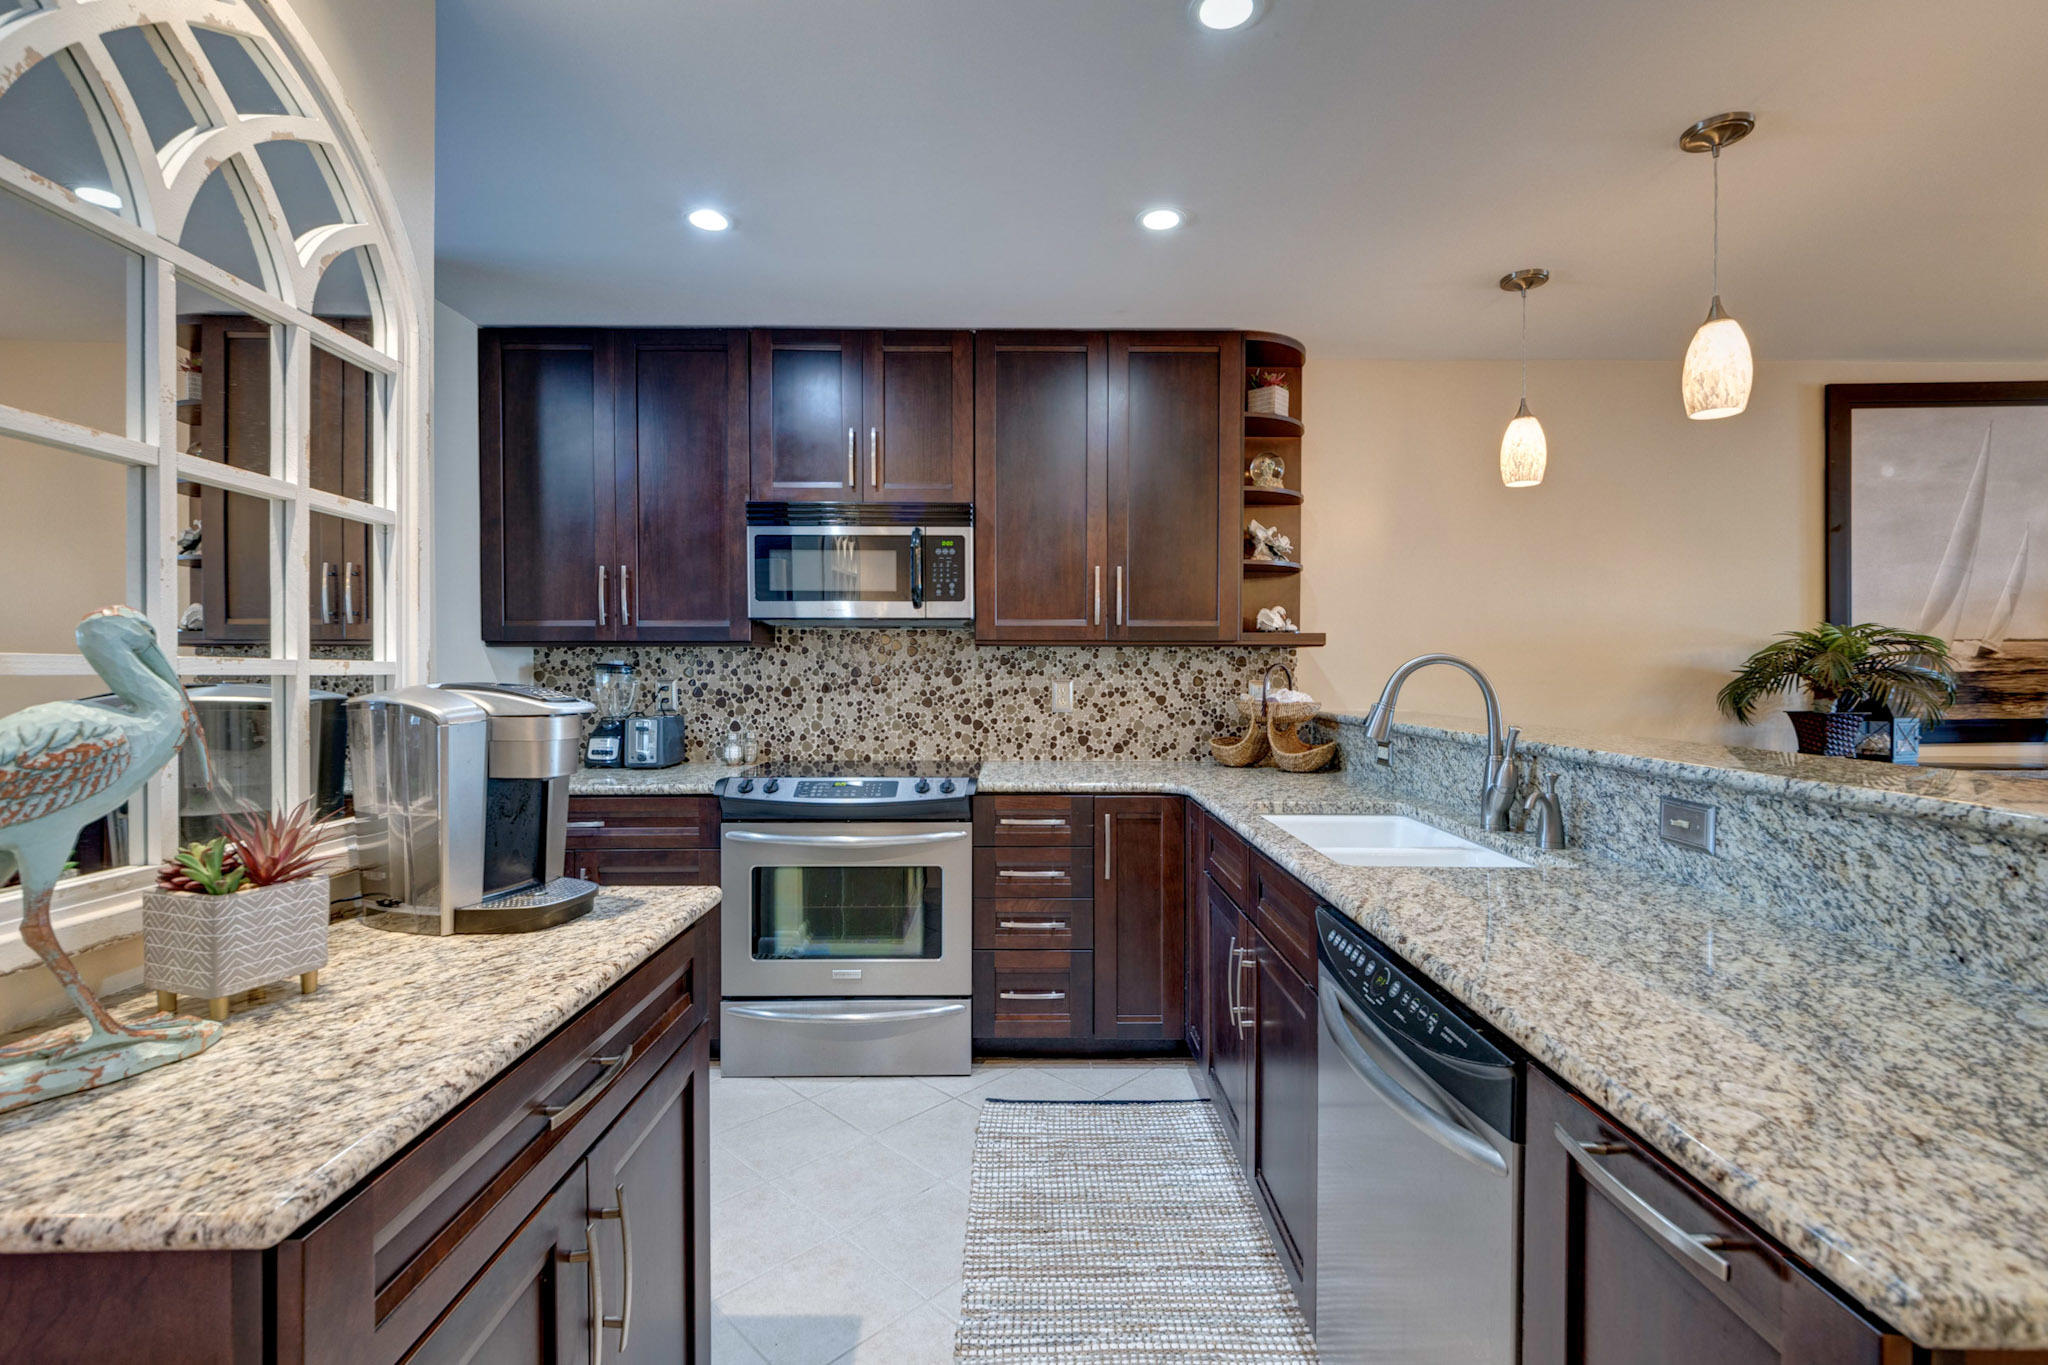 Mariners Cay Homes For Sale - 76 Mariners Cay, Folly Beach, SC - 26